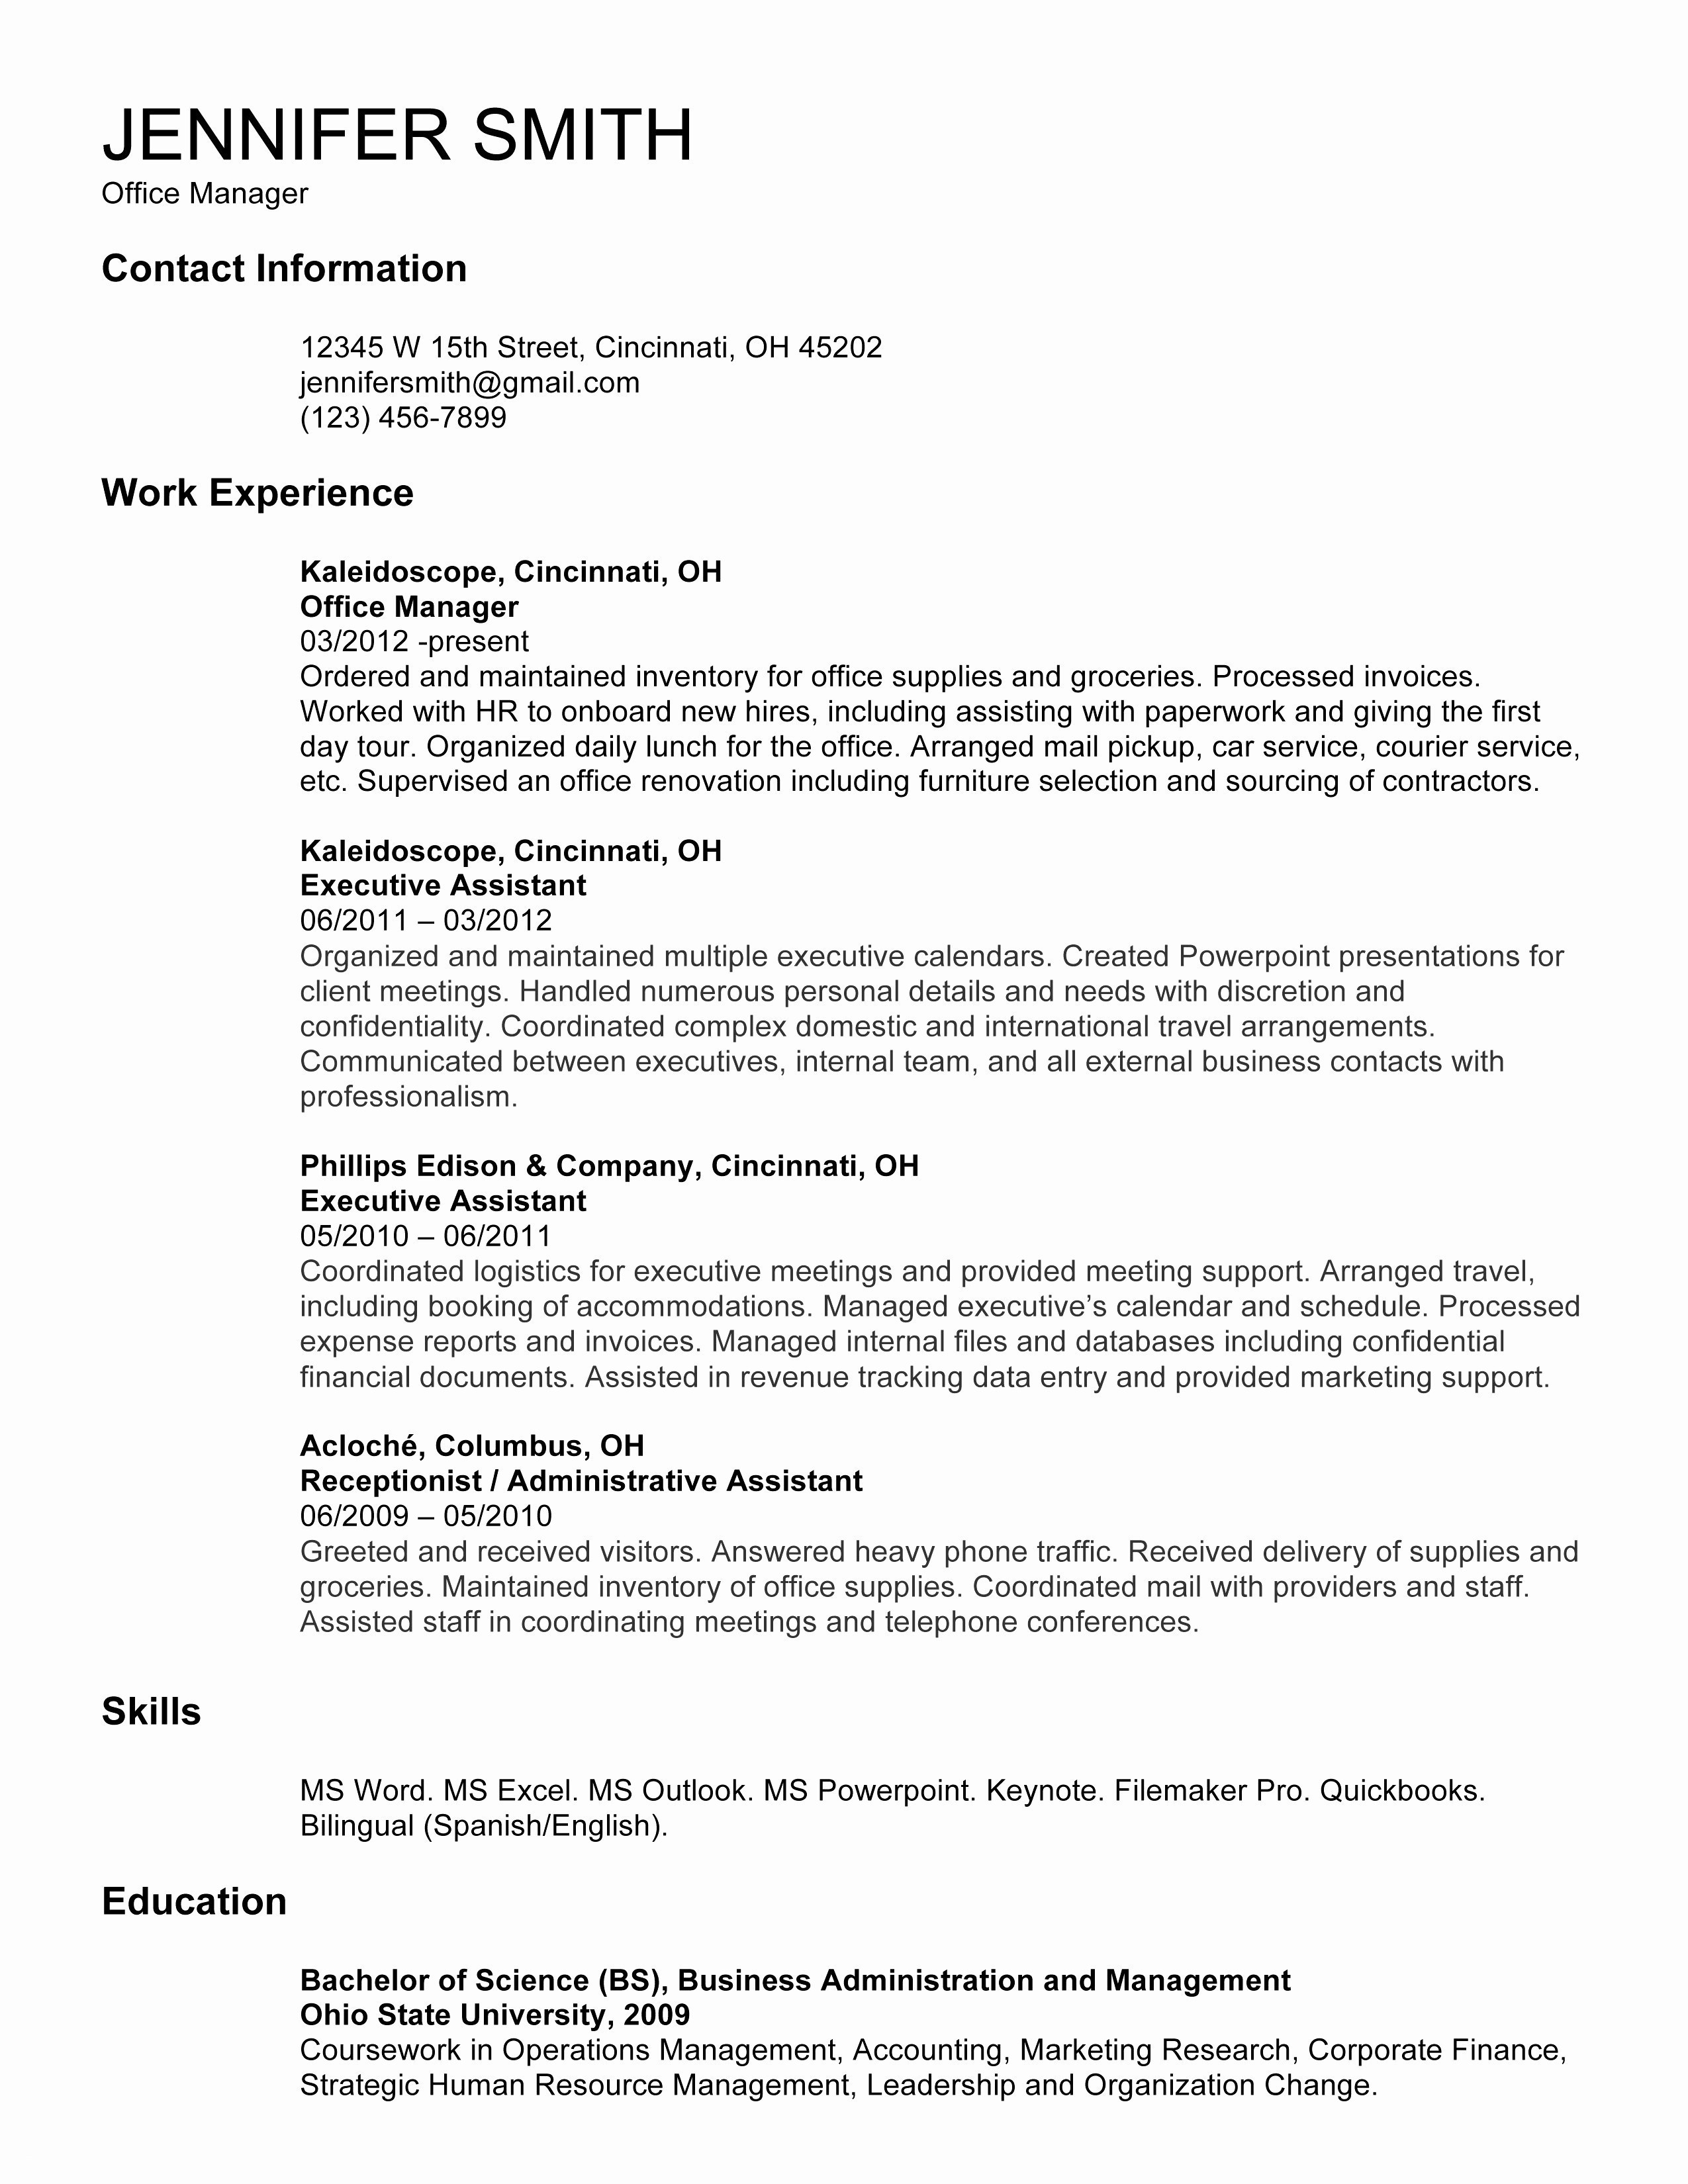 resume template for receptionist example-How To Make A Resume For A Receptionist Job Valid Fresh Reception Resume Luxury American Sample New Student 0d Where 3-o